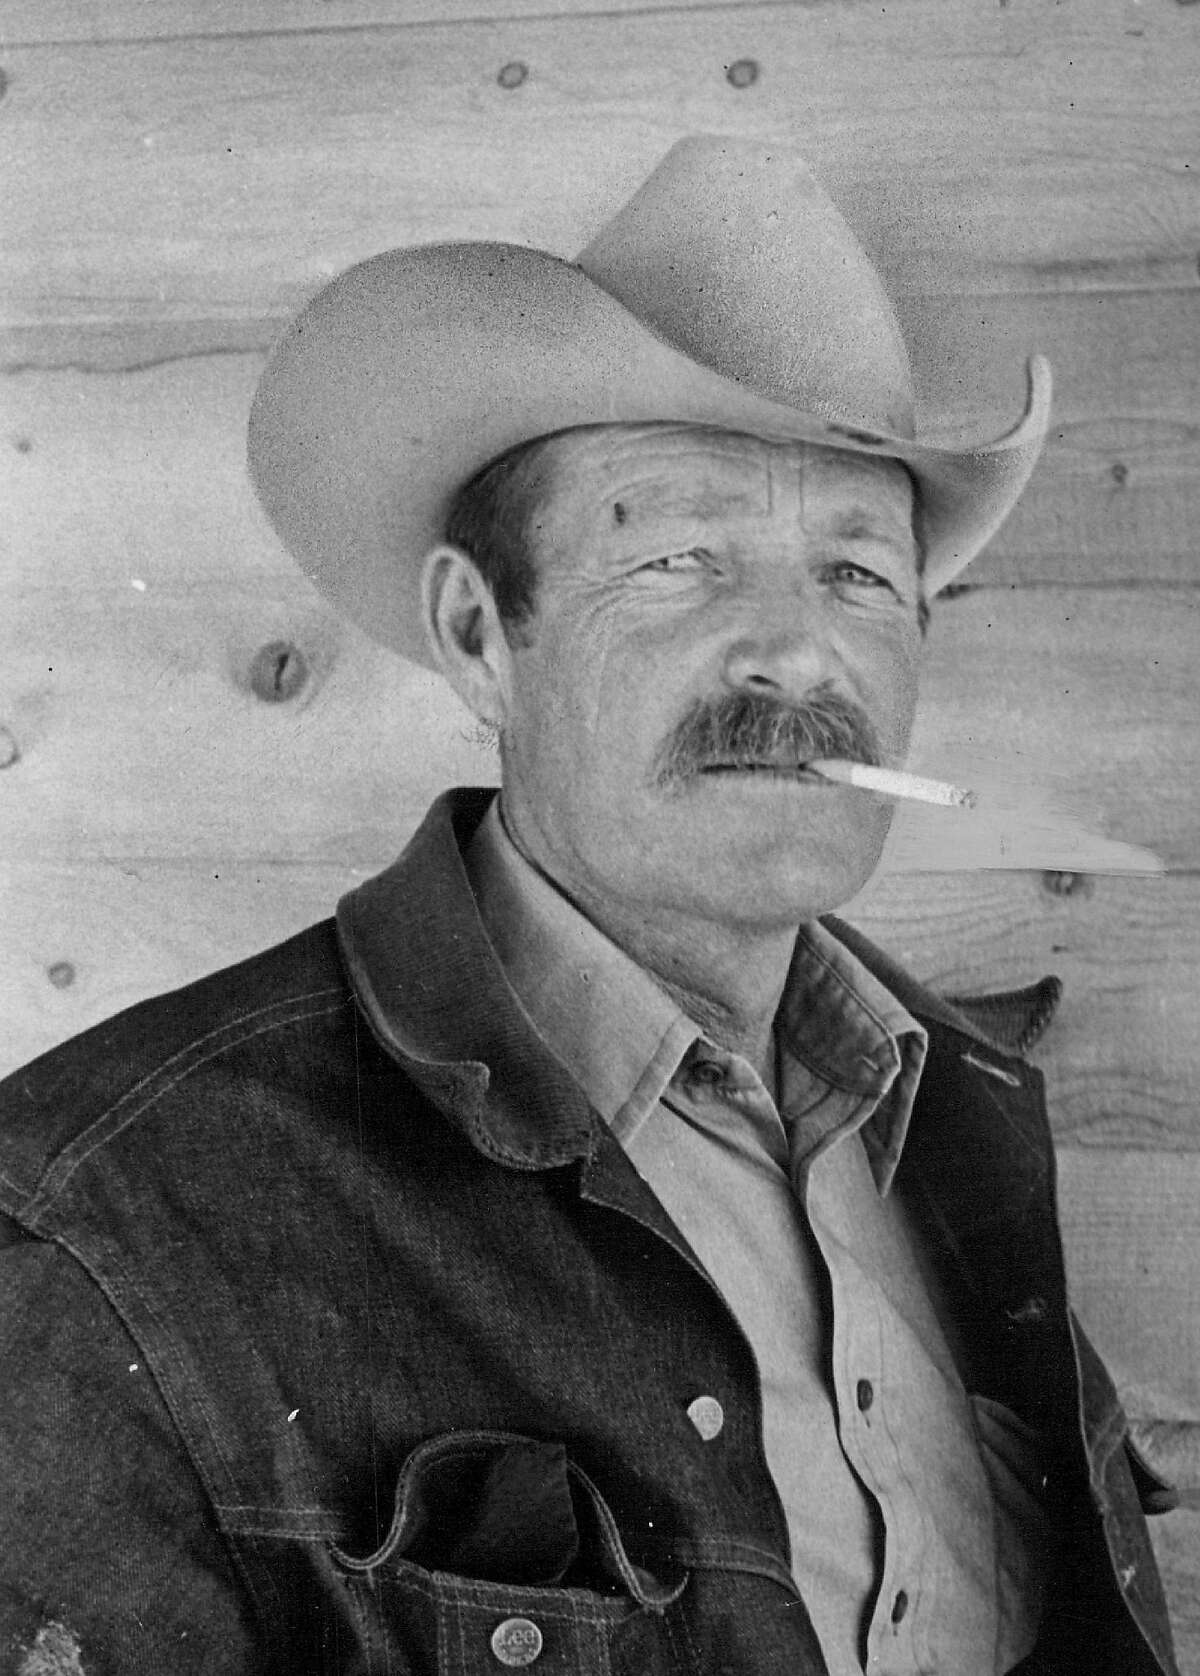 Darrell Winfield, one of the Marlboro Men, strikes a familiar pose in March 1979.